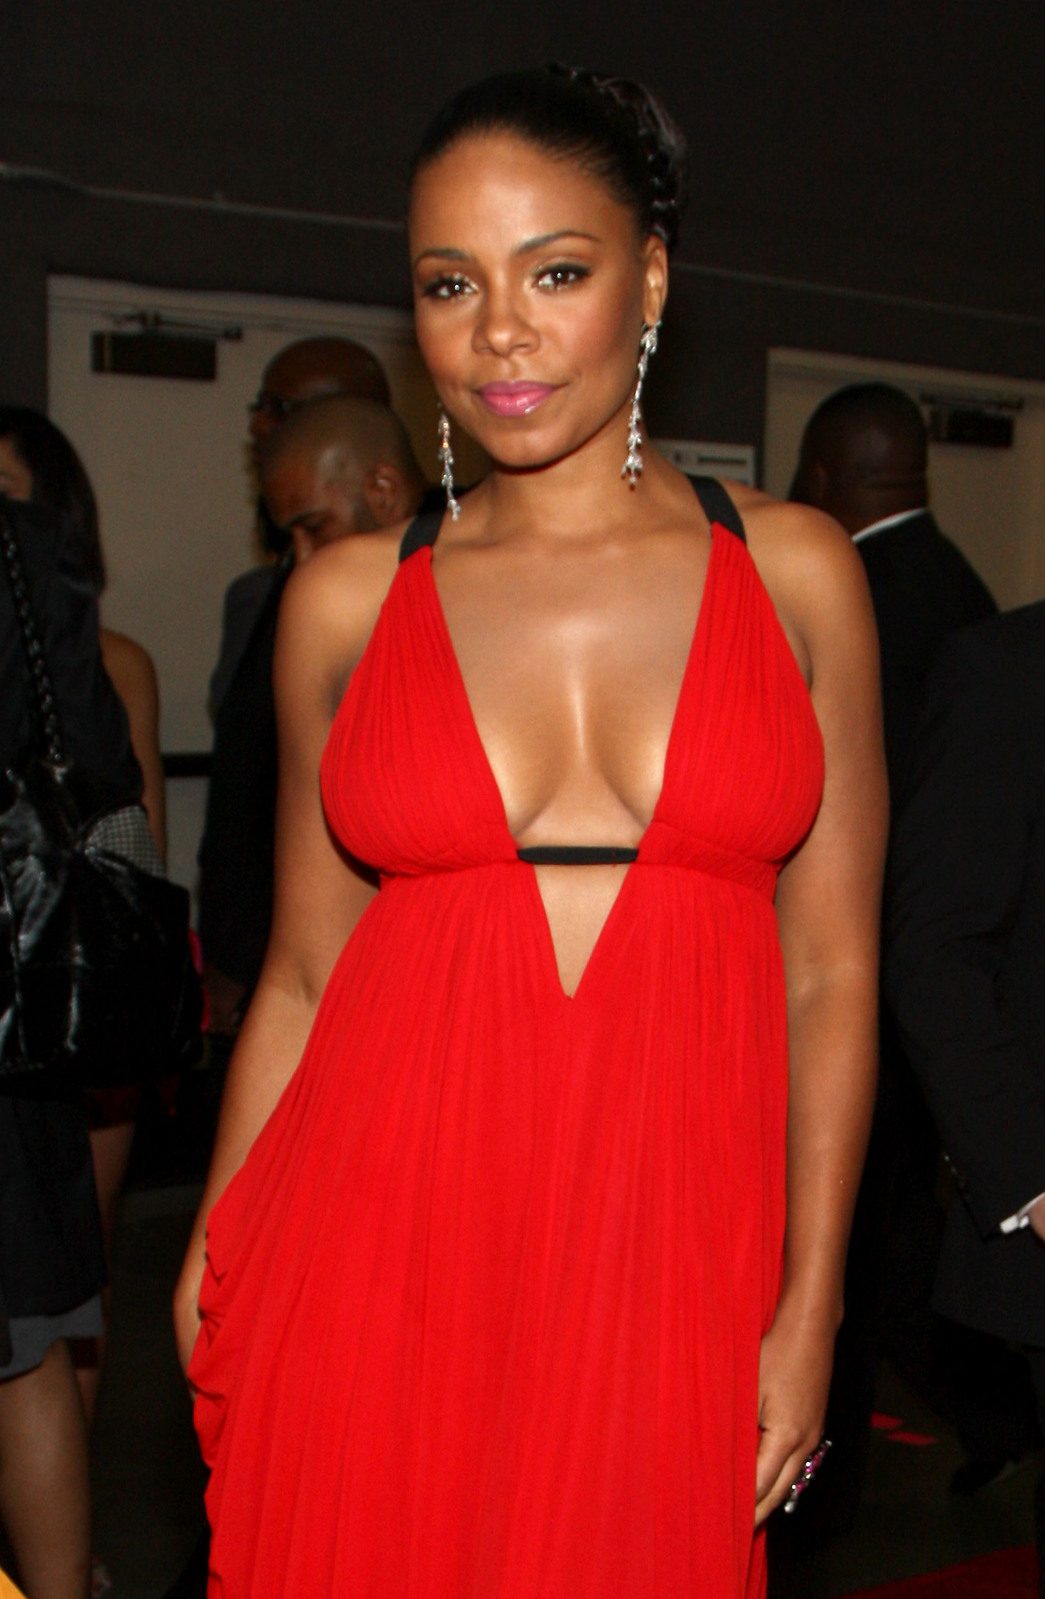 Sanaa Lathan - Gallery Colection